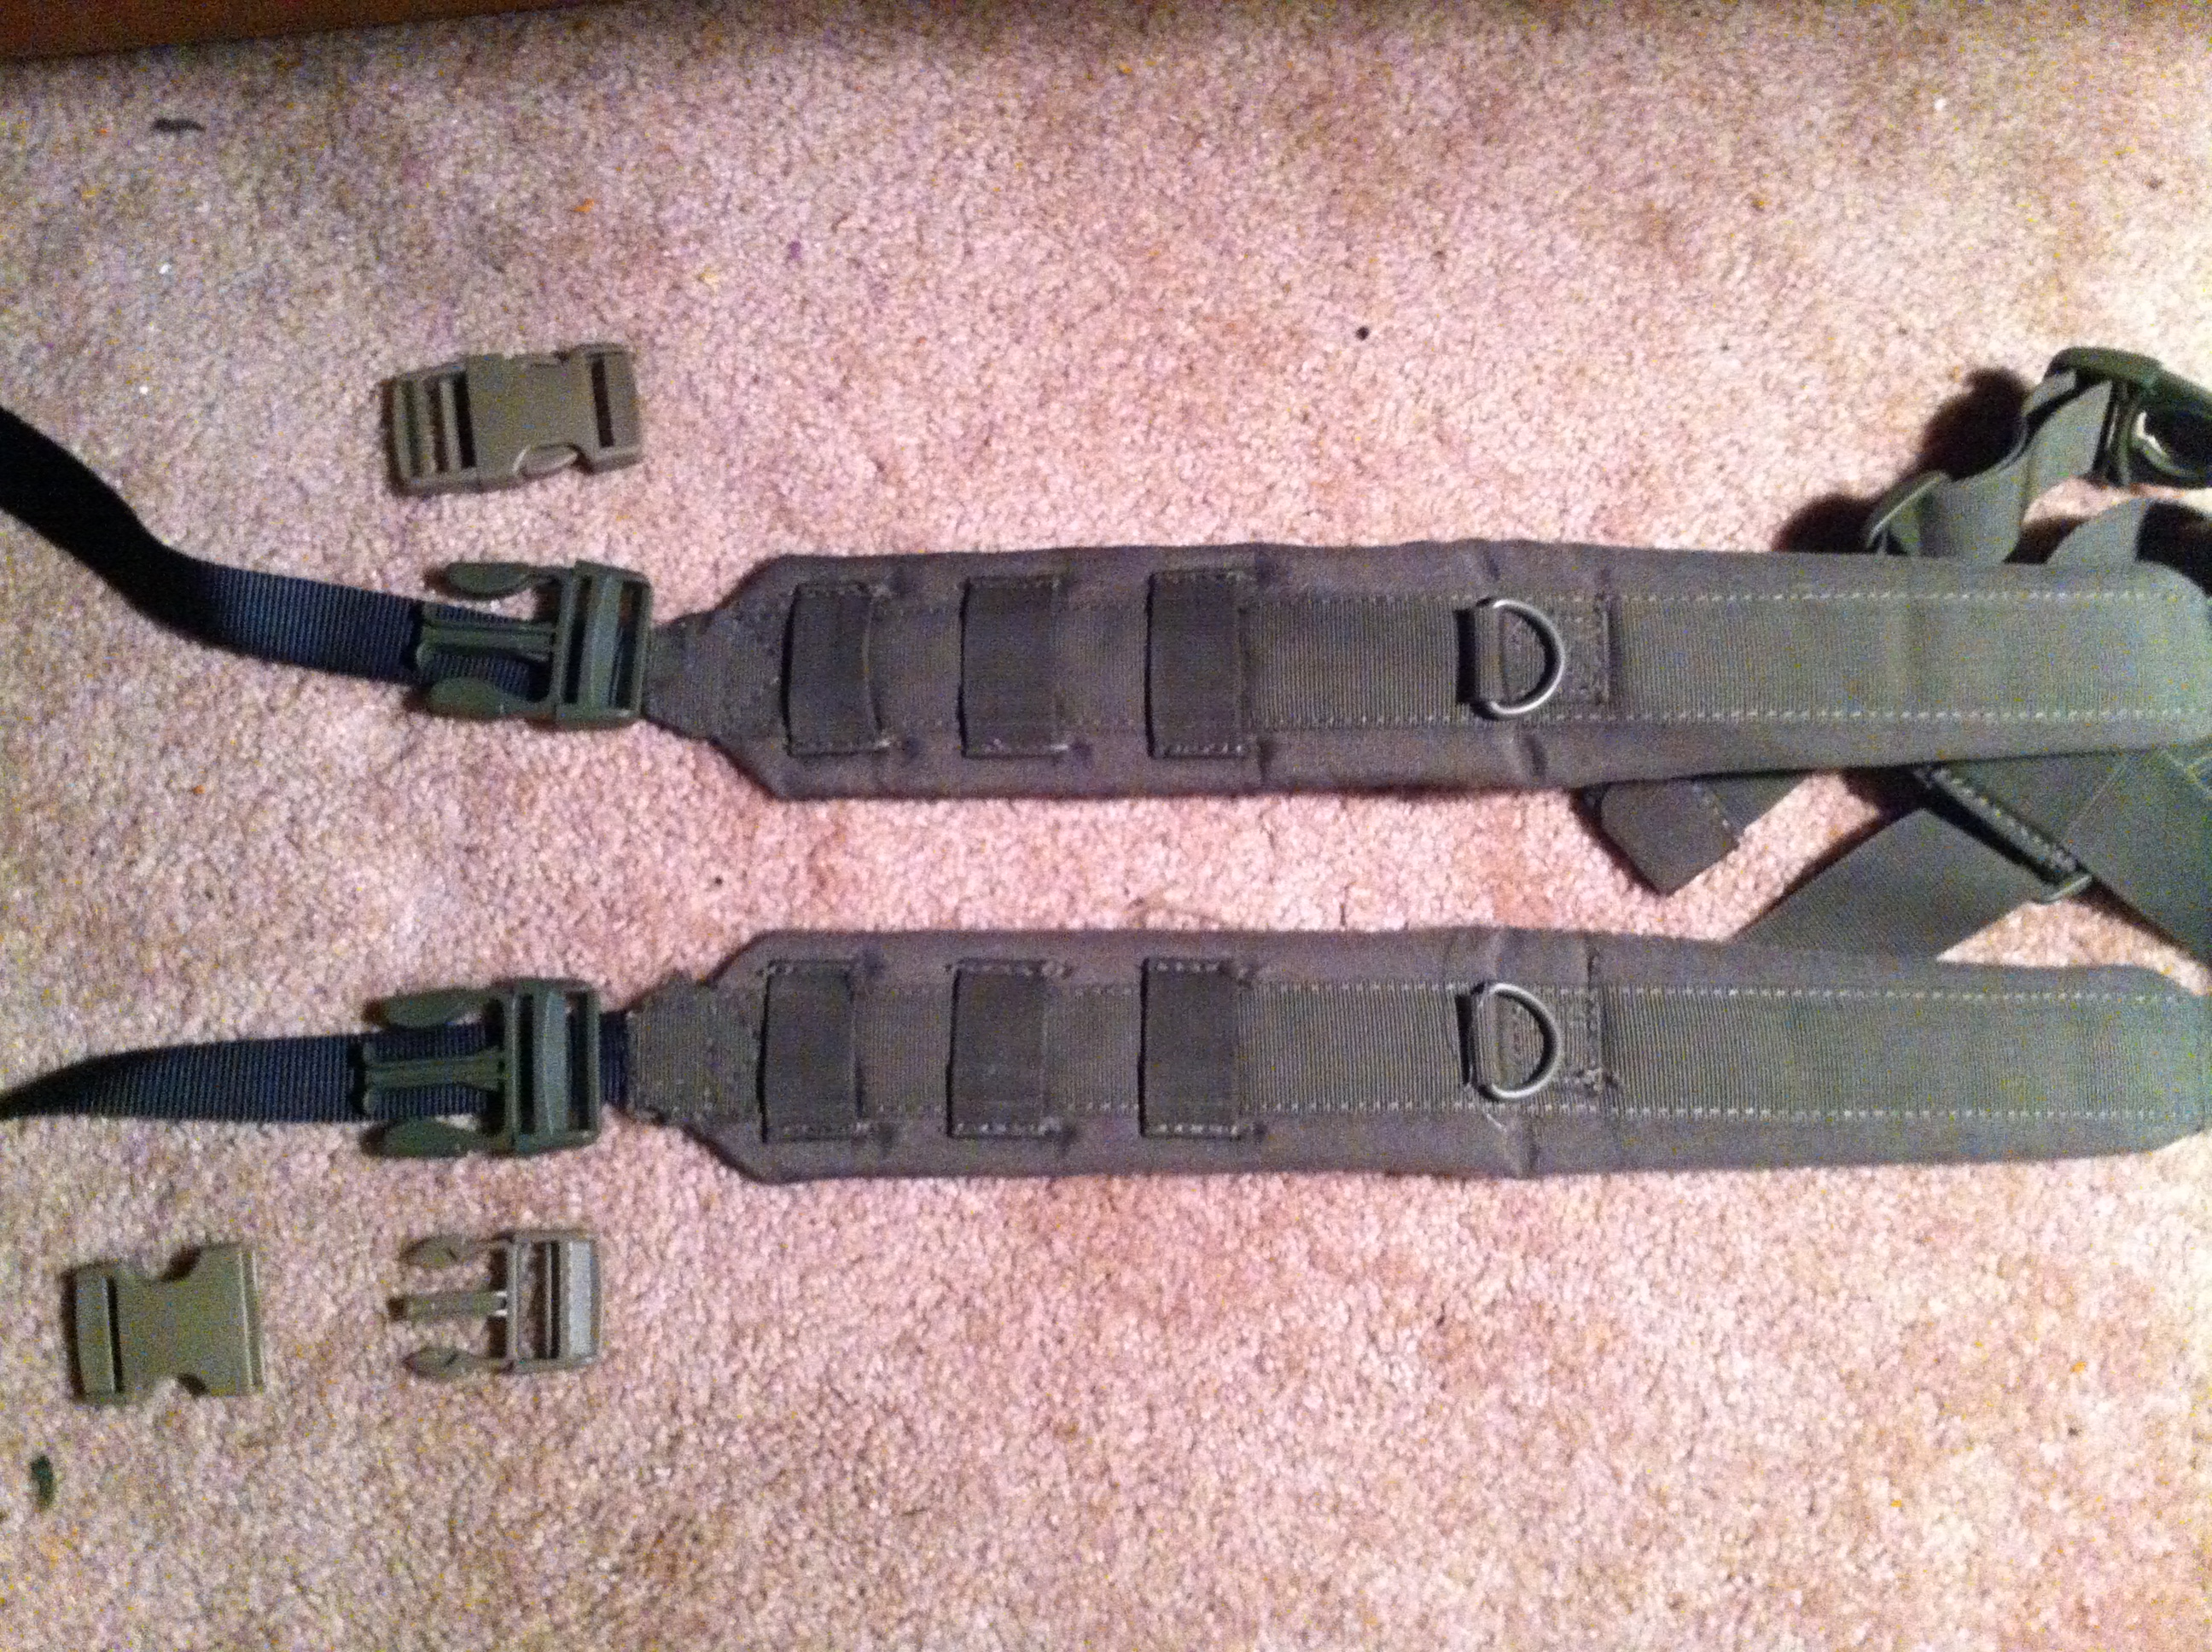 Tactical straps